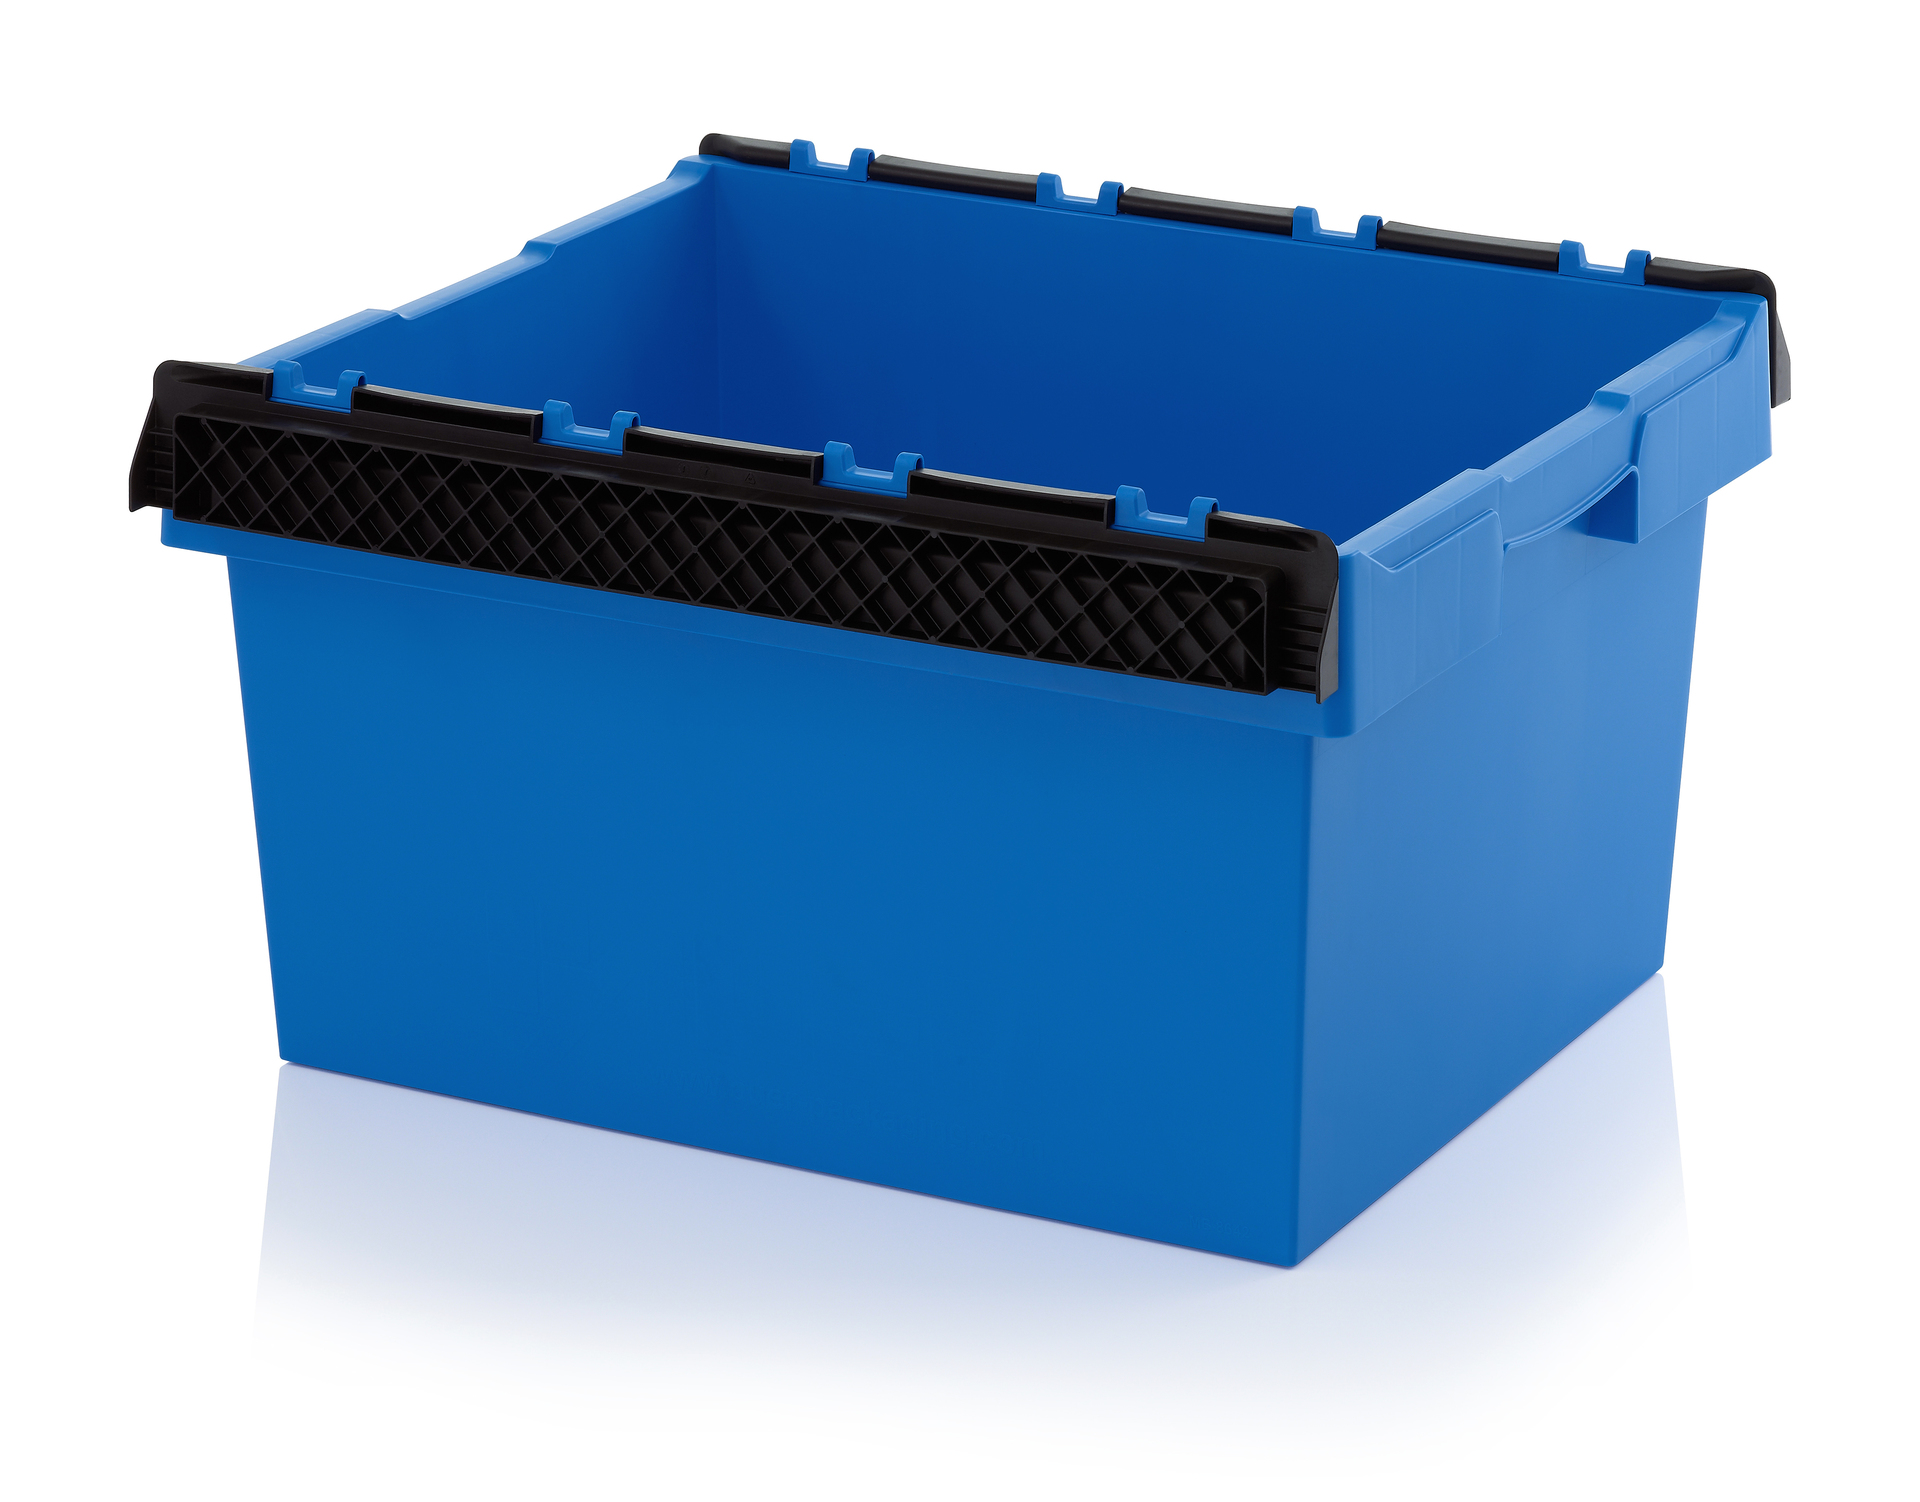 RC8420F_1 Reusable Containers - Plastic Mouldings Northern